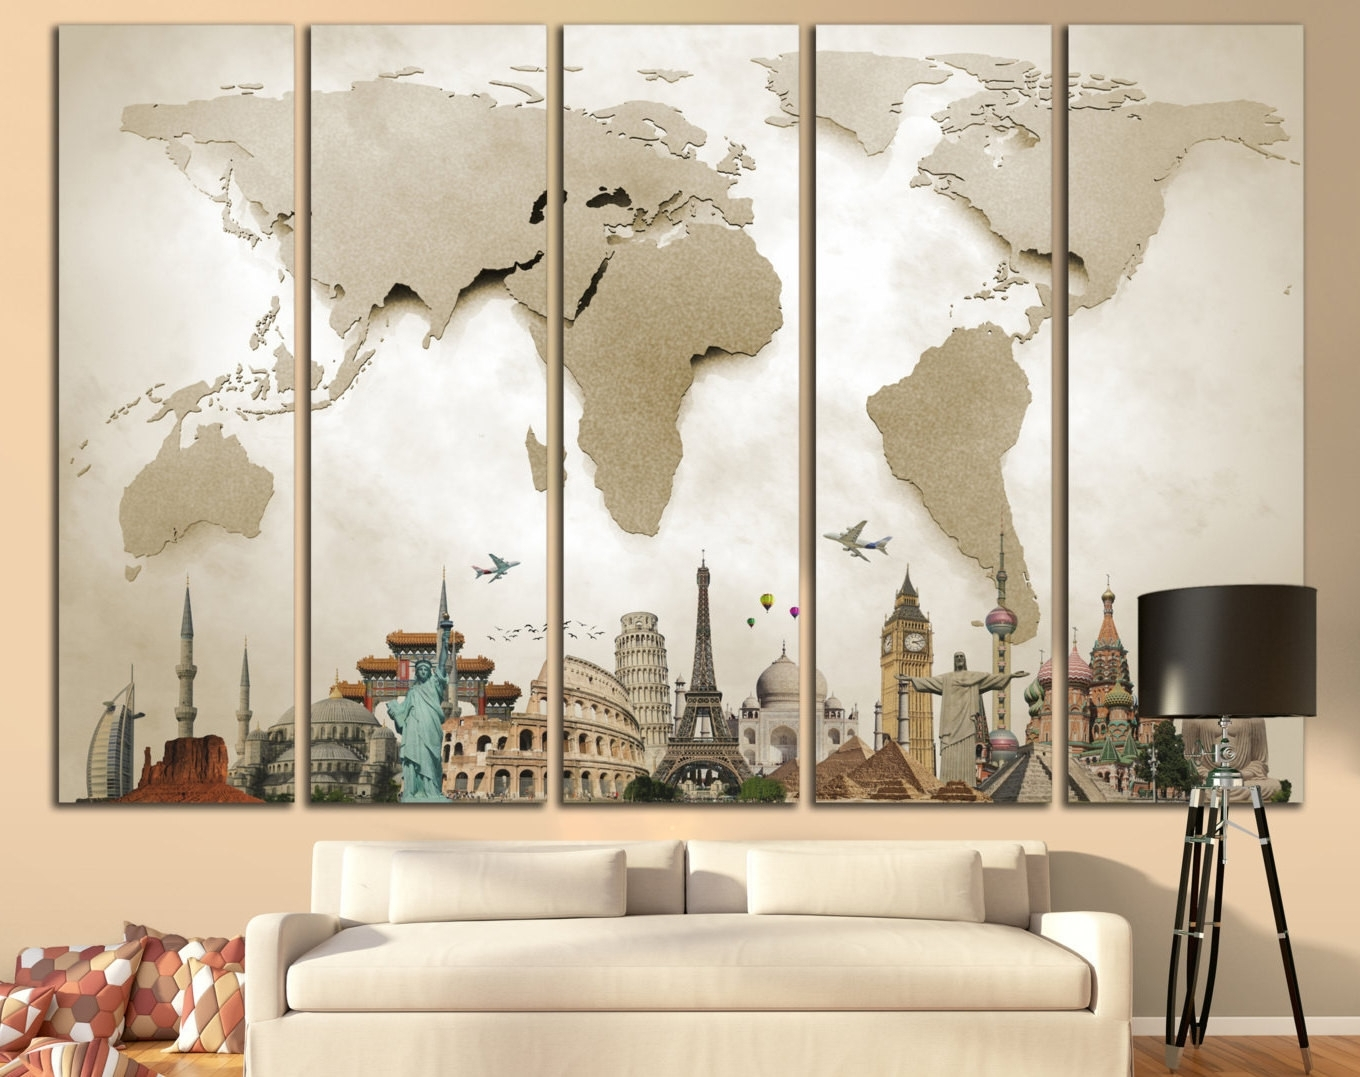 Fashionable 35 Fresh Vintage Map Wall Art Wall Art Decorative (View 12 of 15)